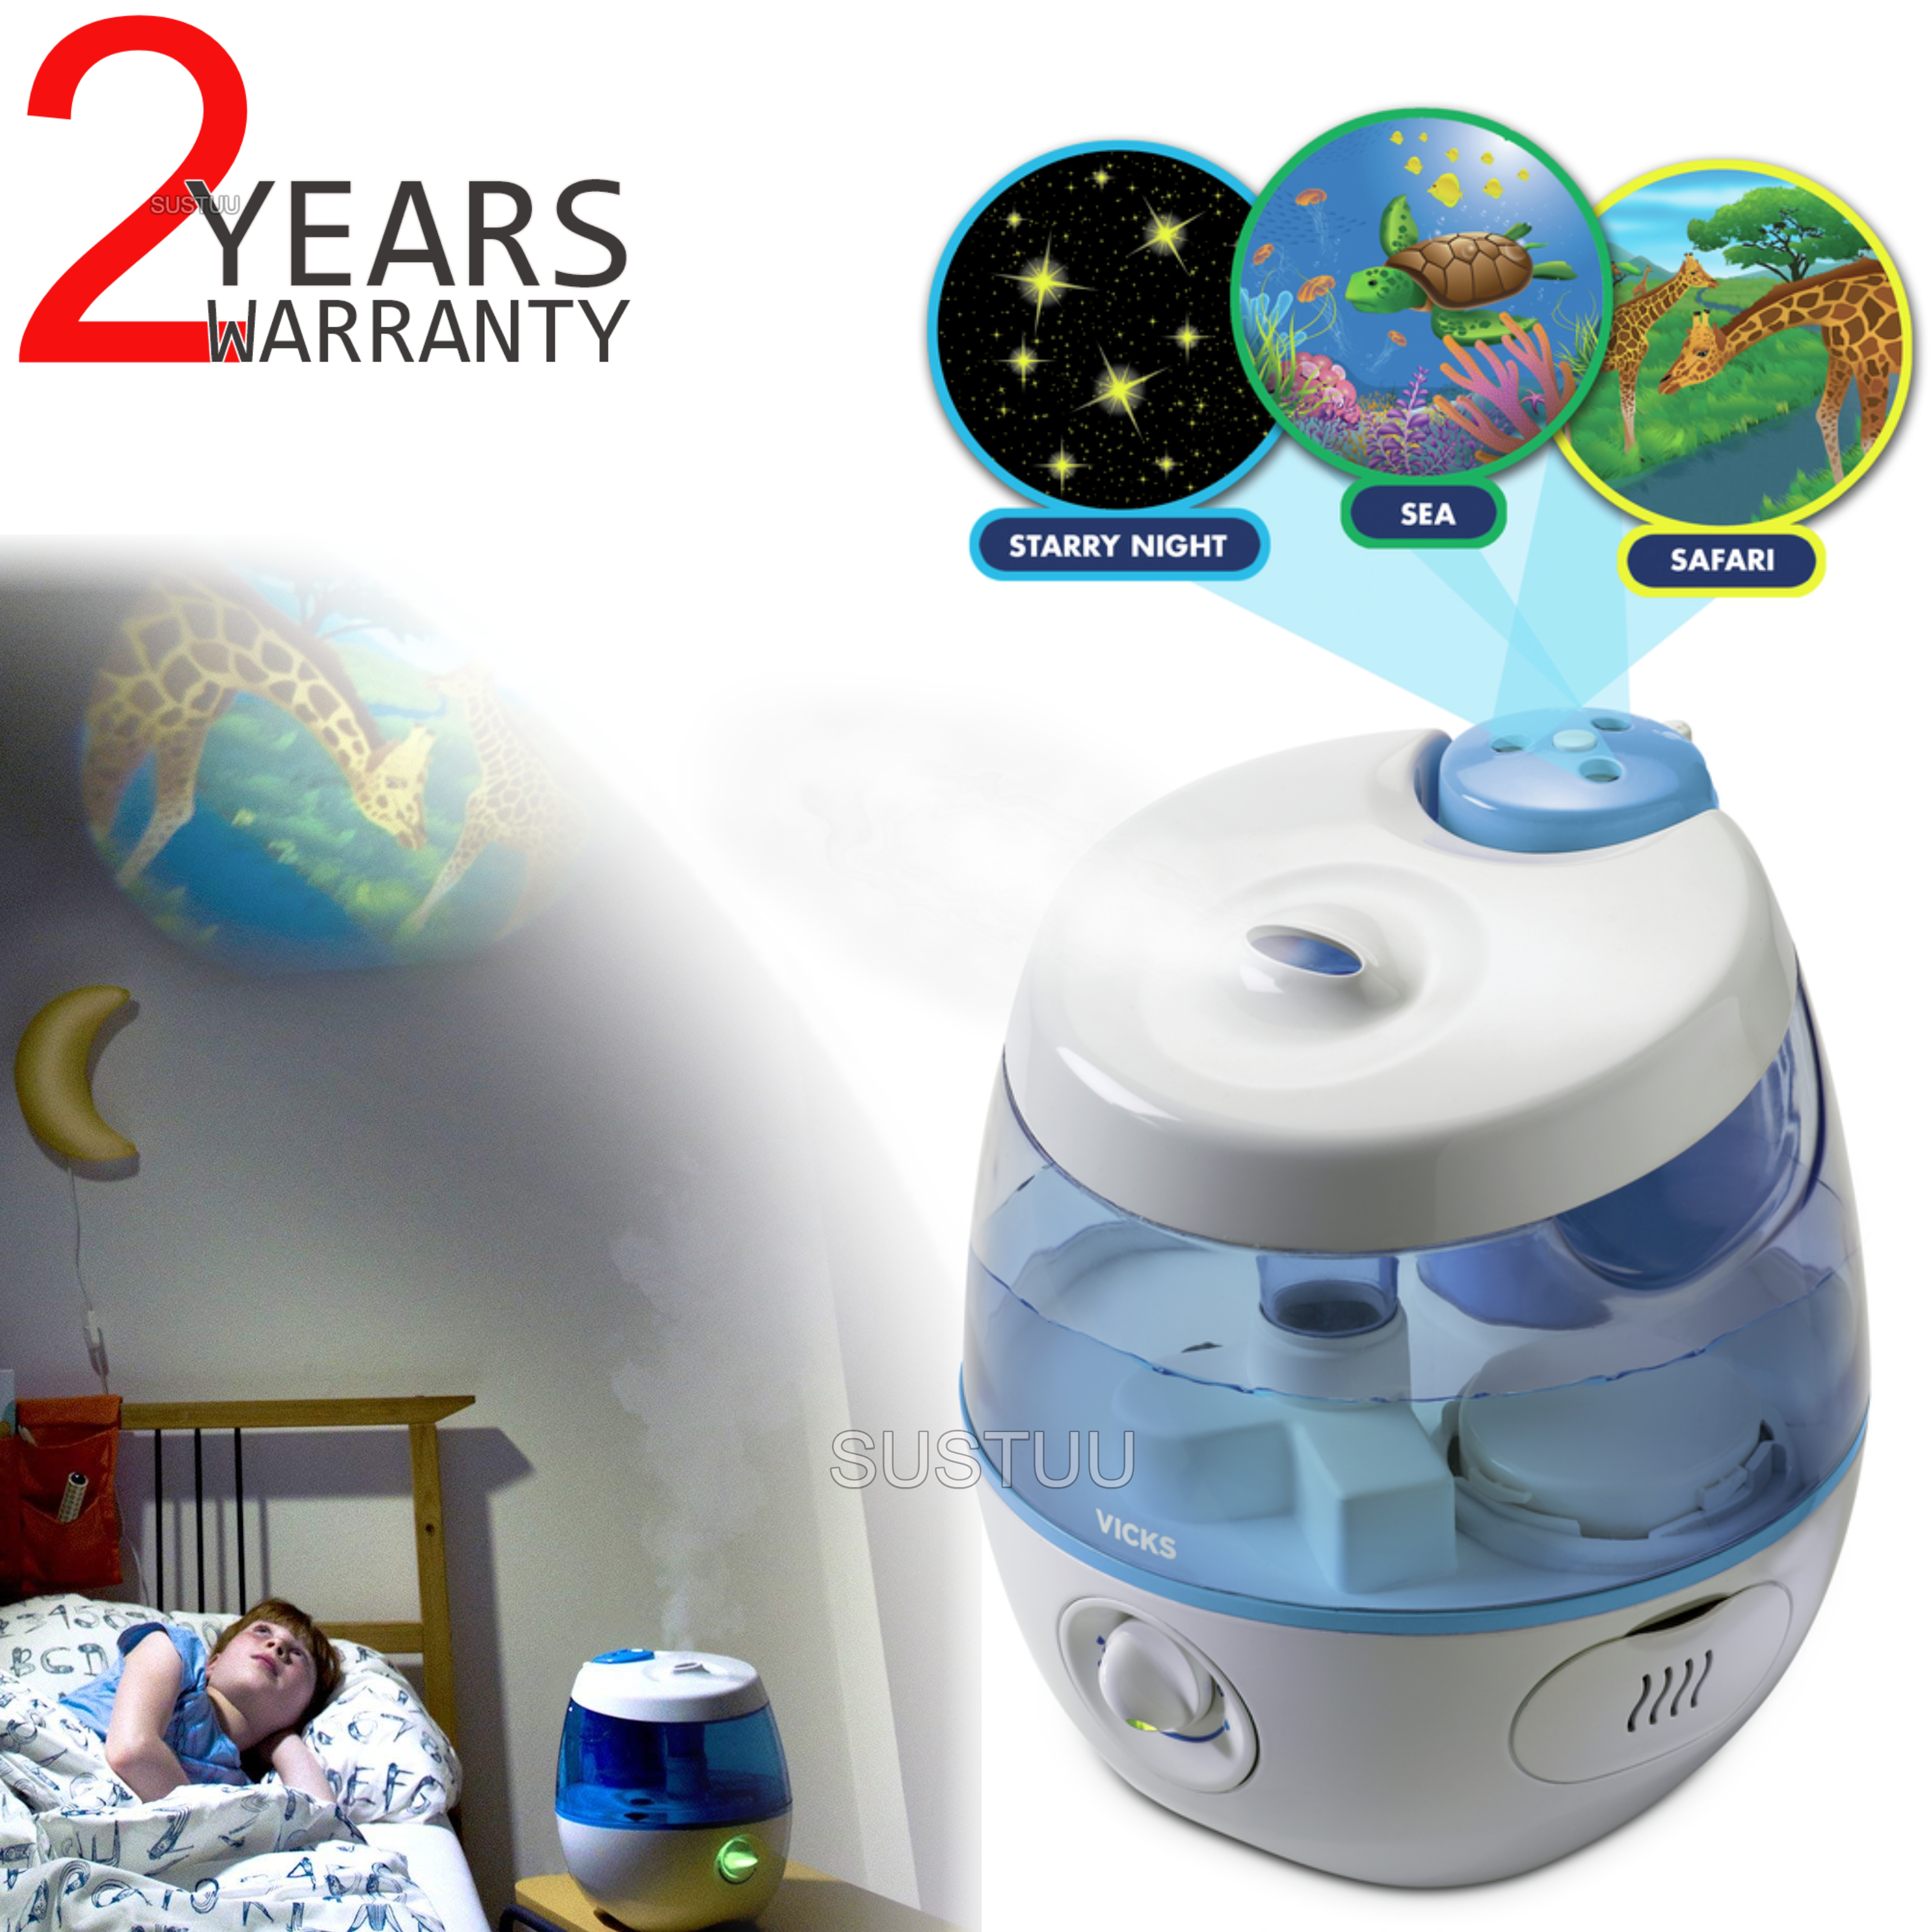 Vicks Sweet Dreams Cool Mist Humidifier with Image Projector 2 in 1 | Safe & Quiet